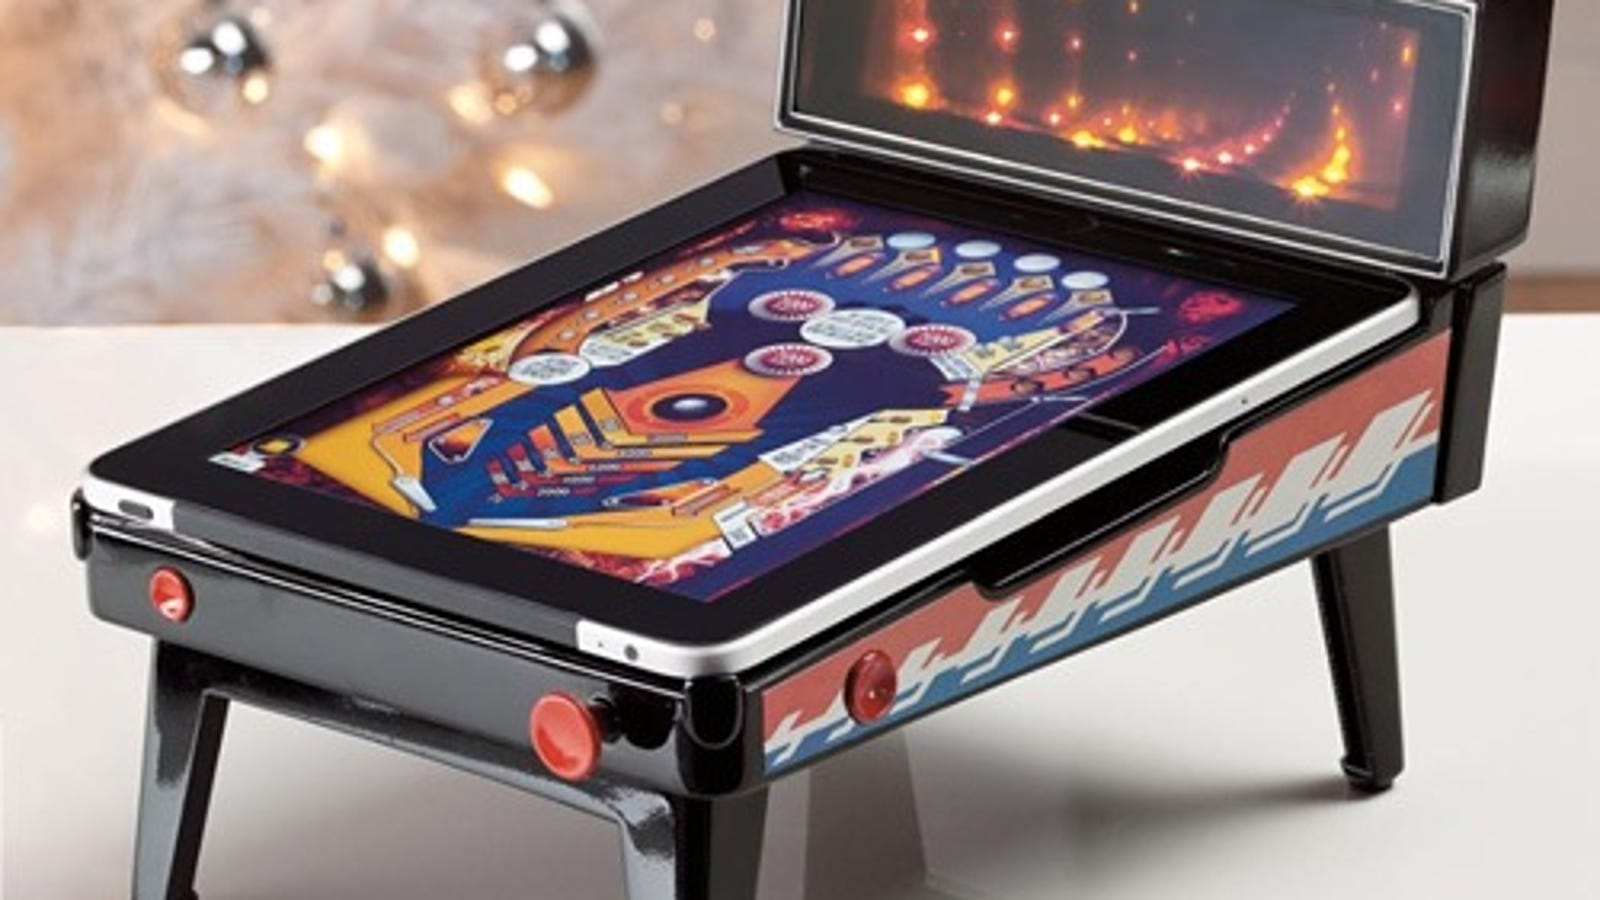 Turn Your iPad or iPhone Into a Pinball Machine